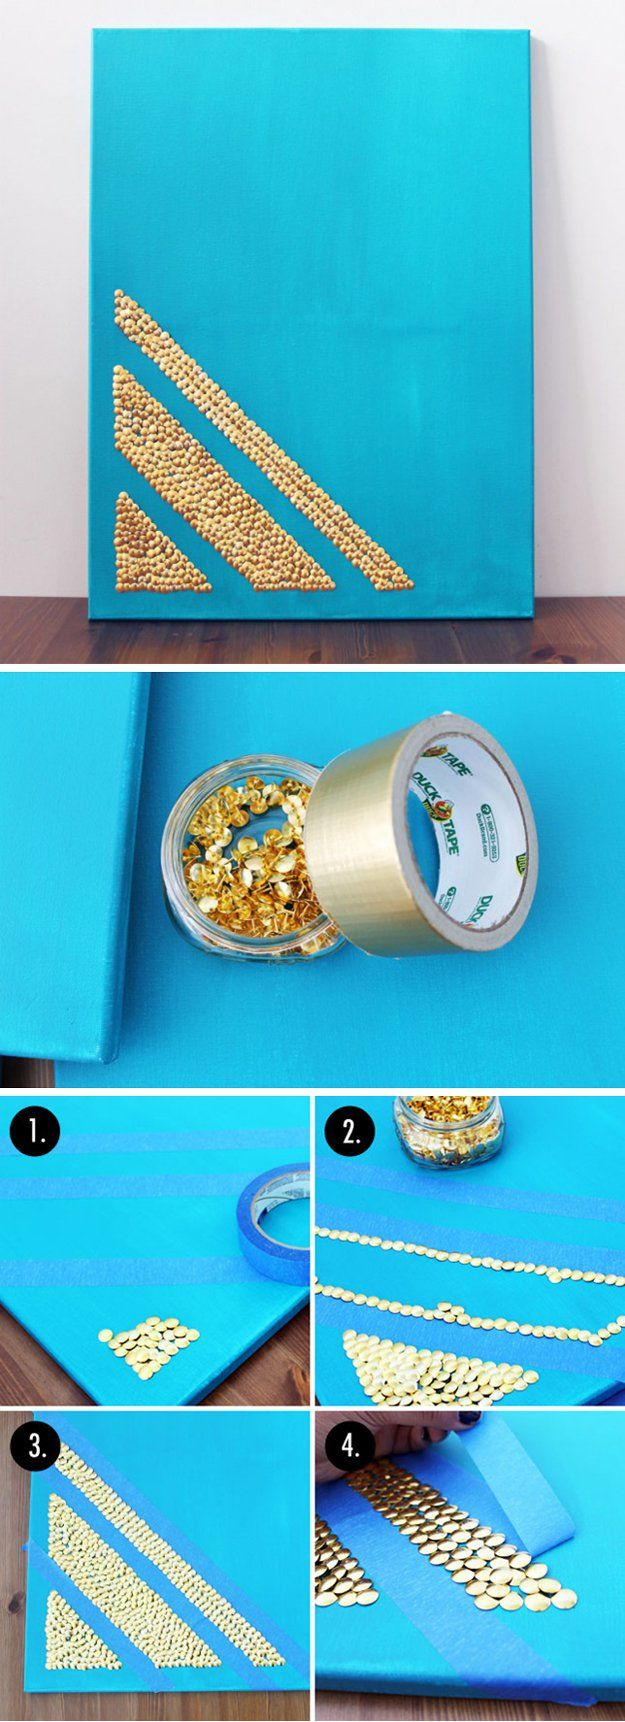 Easy wall art ideas pinterest easy diy crafts diy wall art and